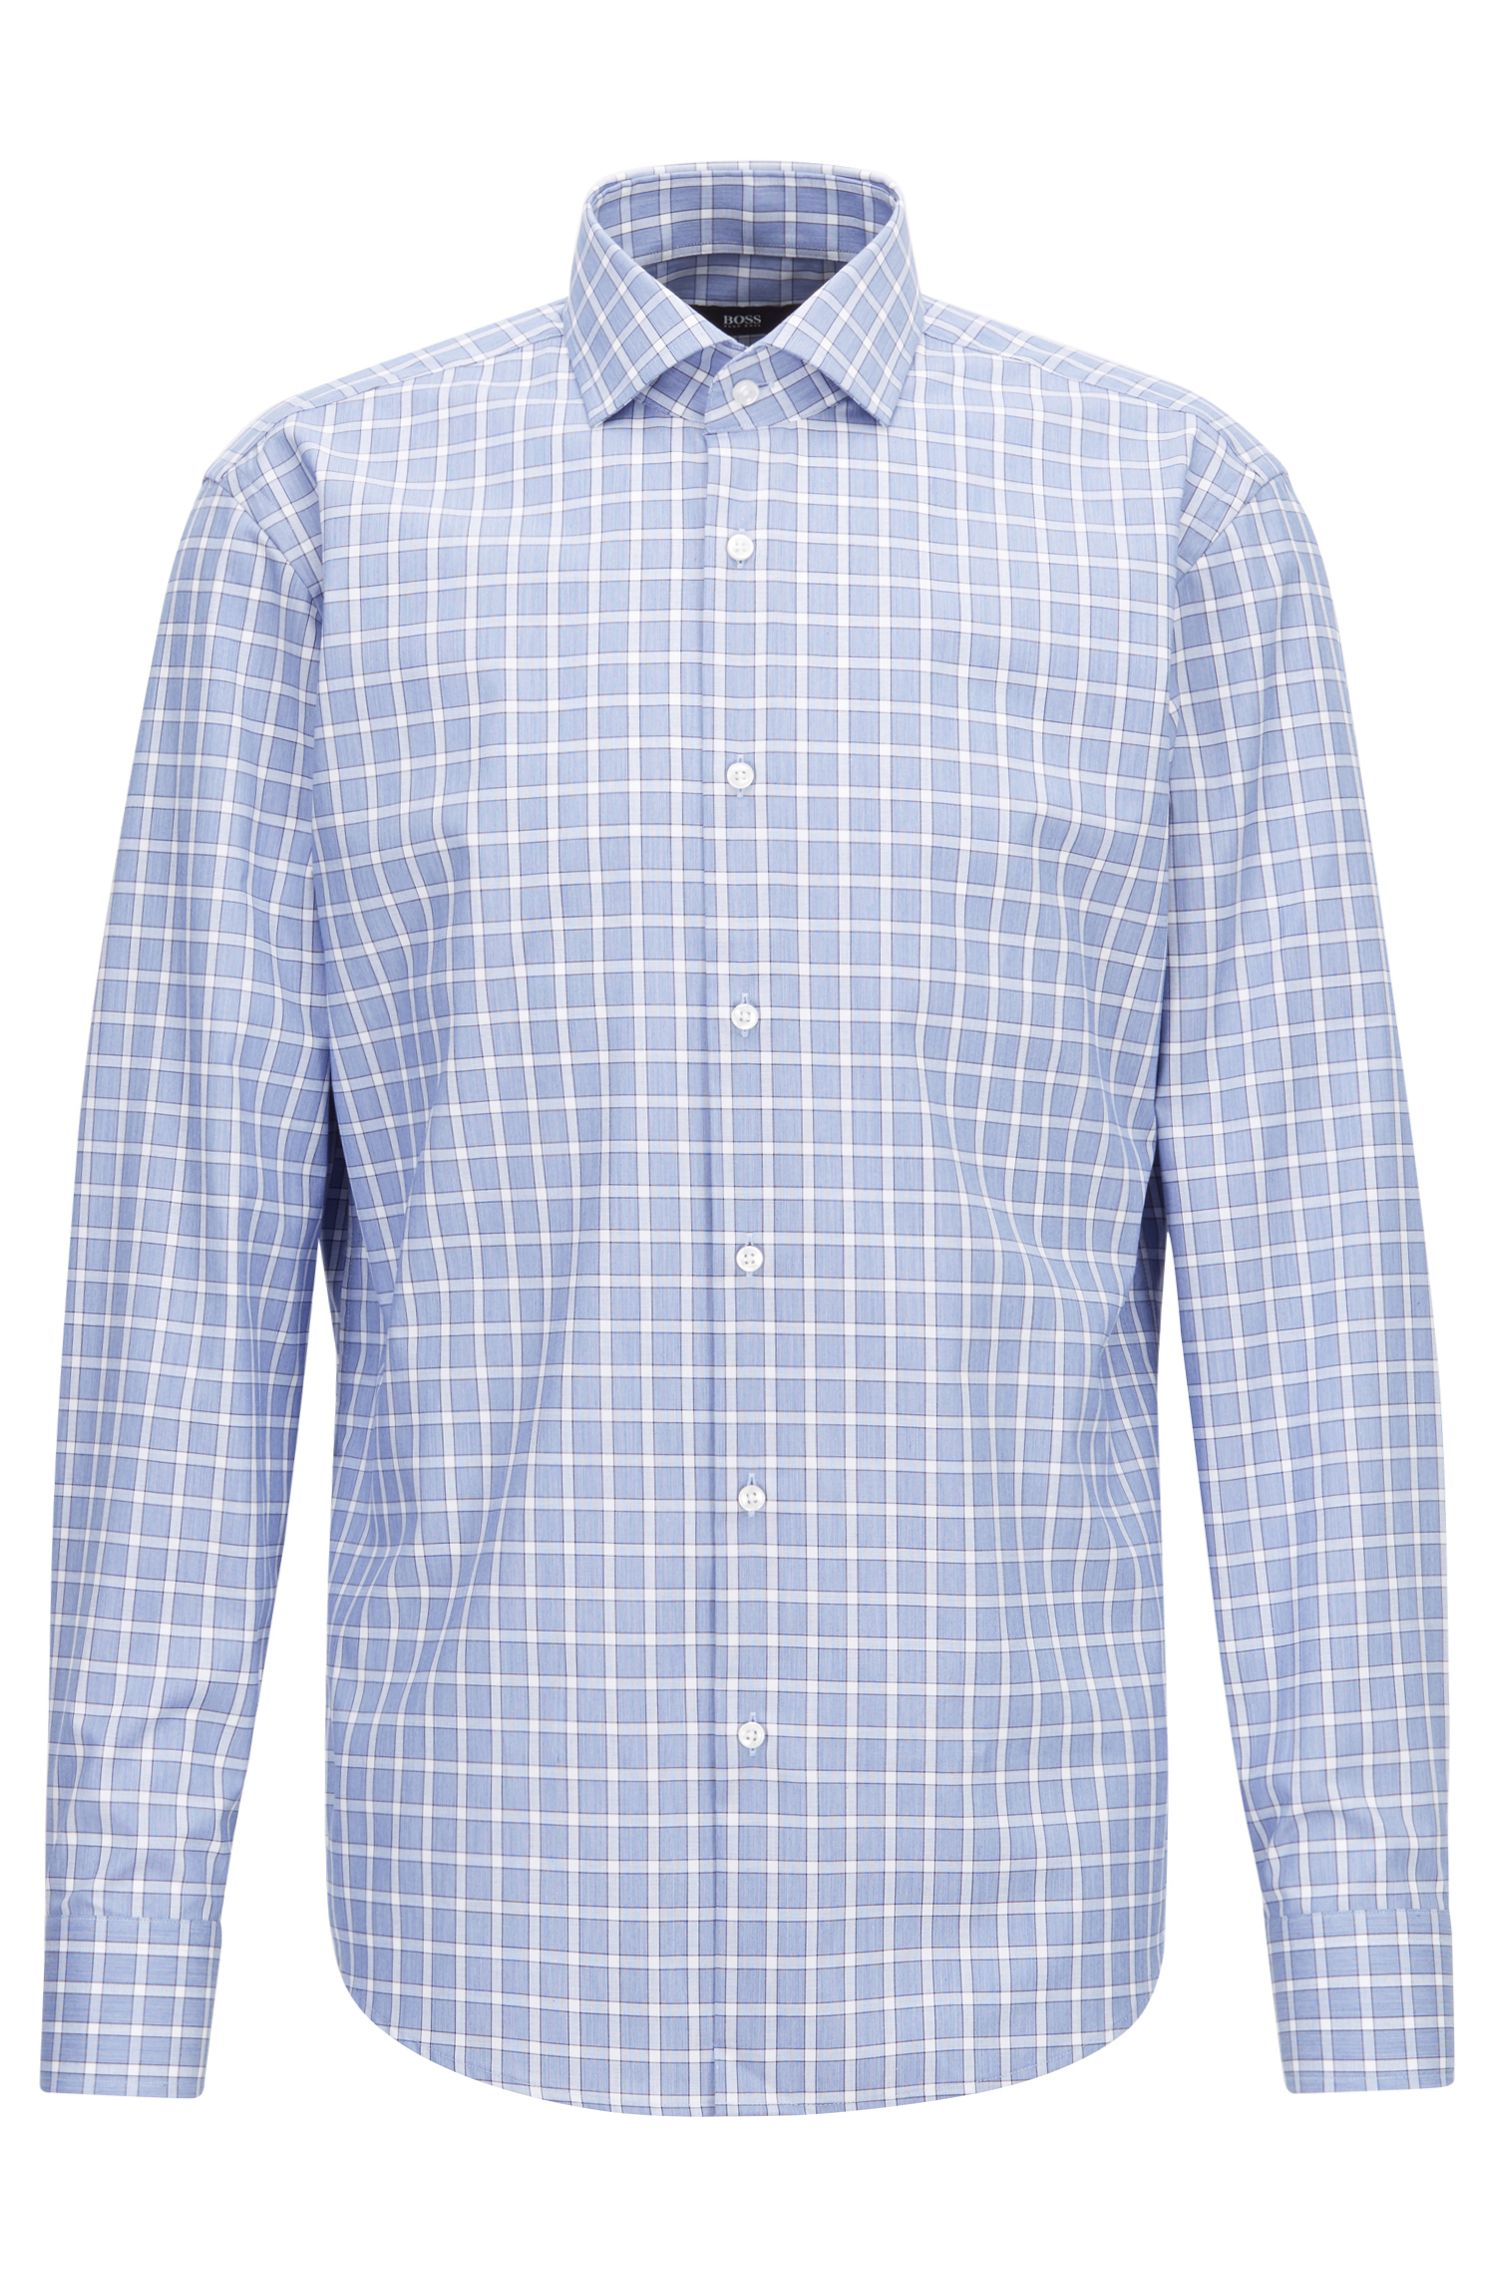 Camicia regular fit facile da stirare in cotone a quadri Vichy, Blu